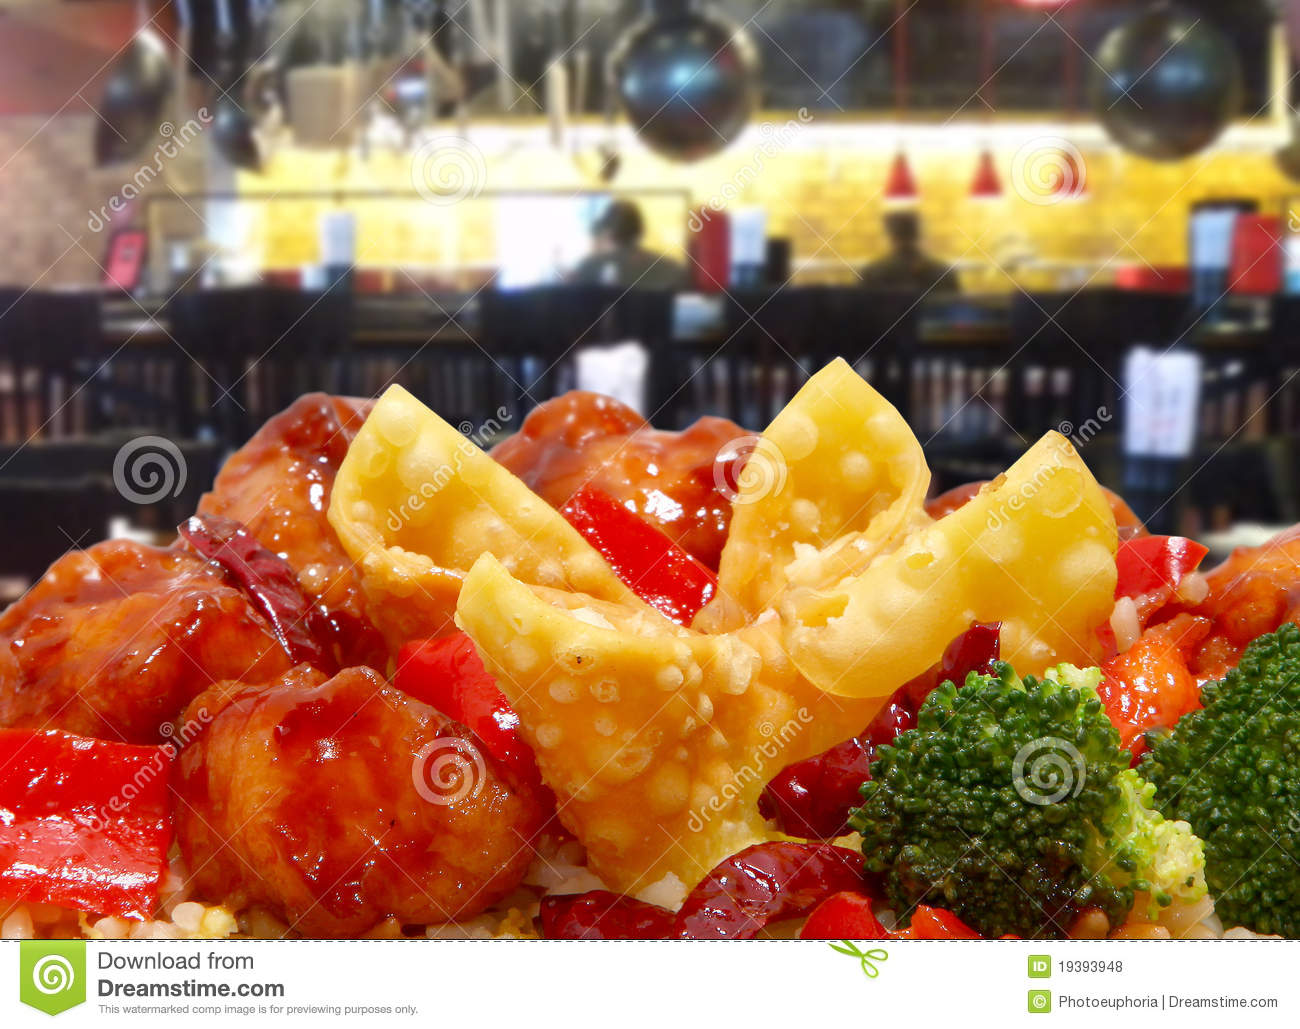 Download Rangoon And General Tso Chicken In Restaurant Stock Photo - Image of carrot, broccoli: 19393948